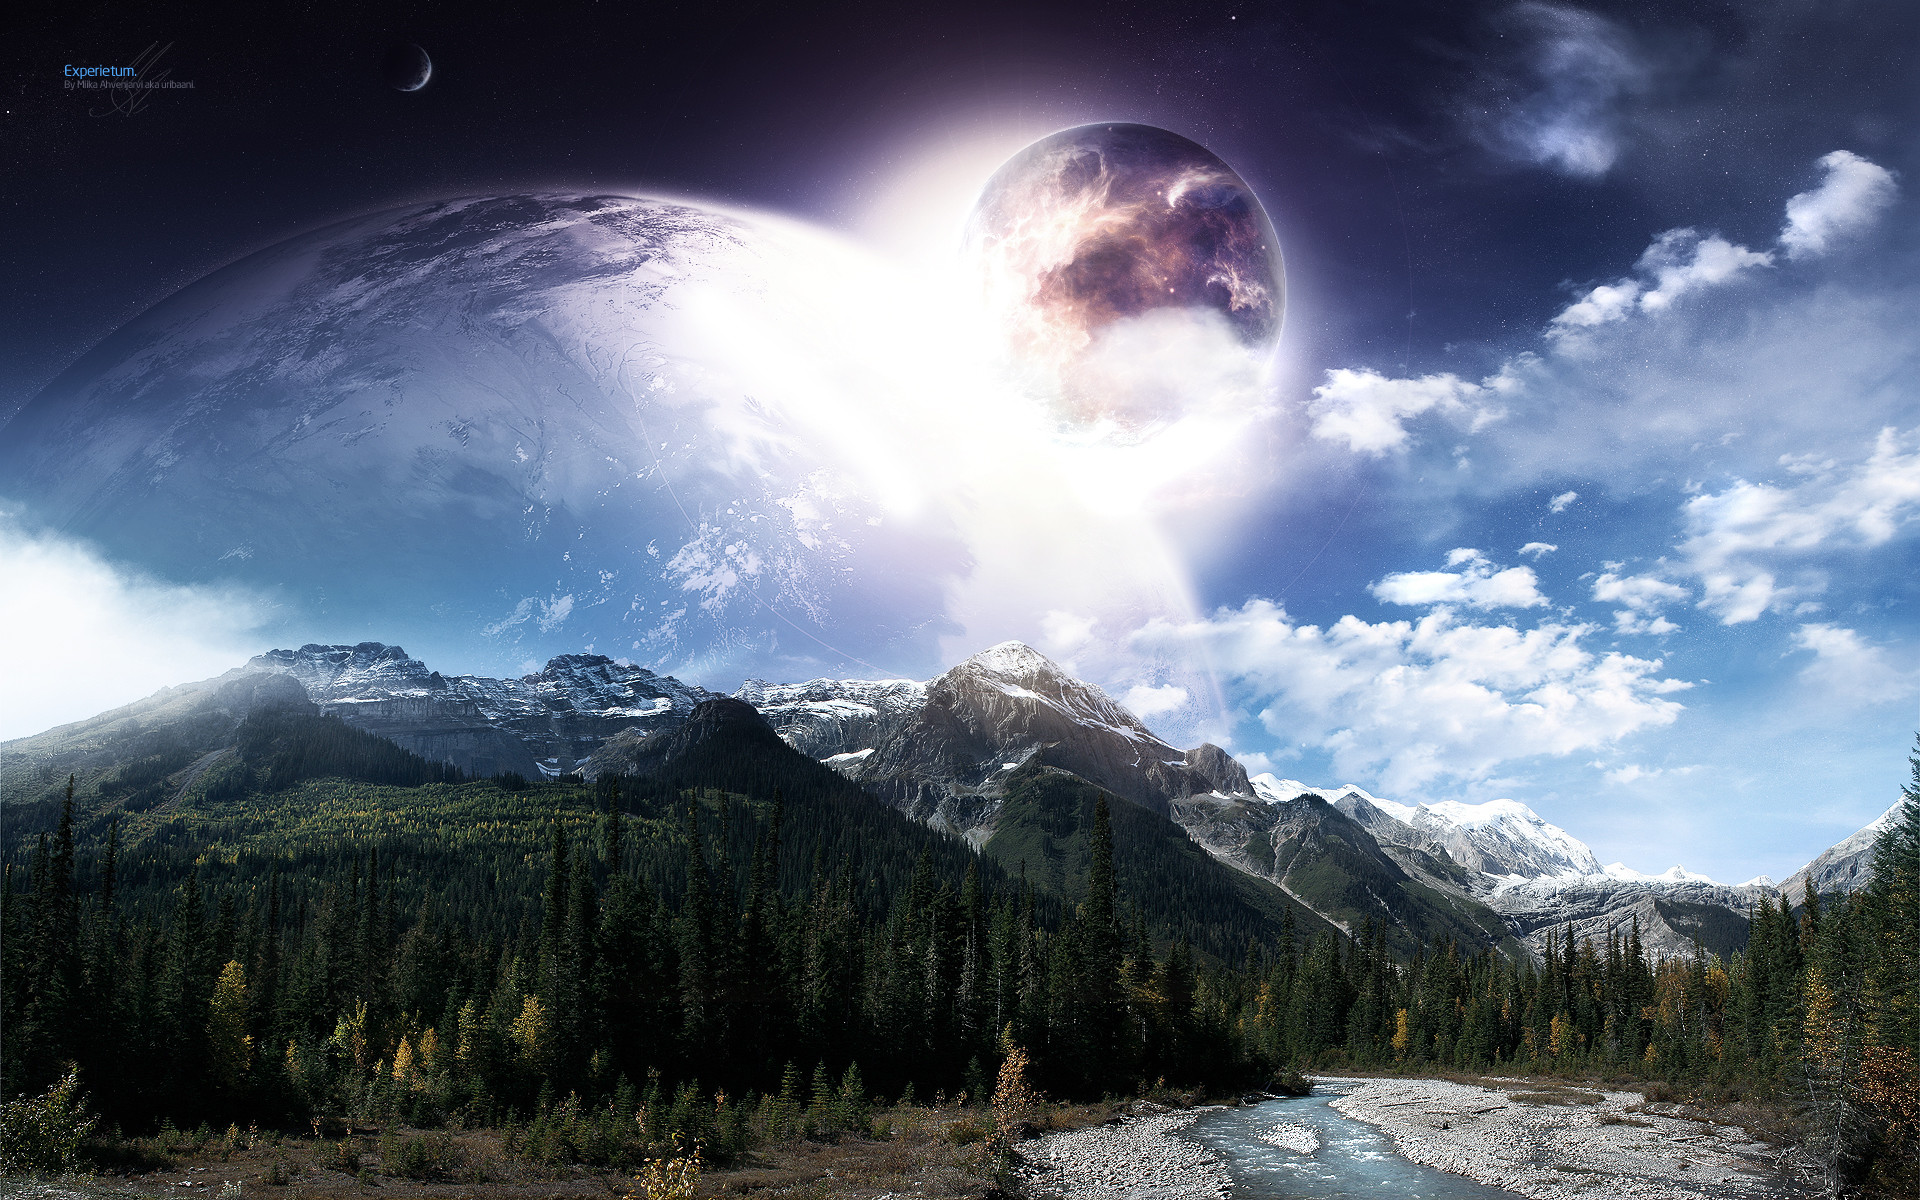 39 best Awesome sci-fi image art images on Pinterest   Sci fi, Science  fiction and Landscape wallpaper